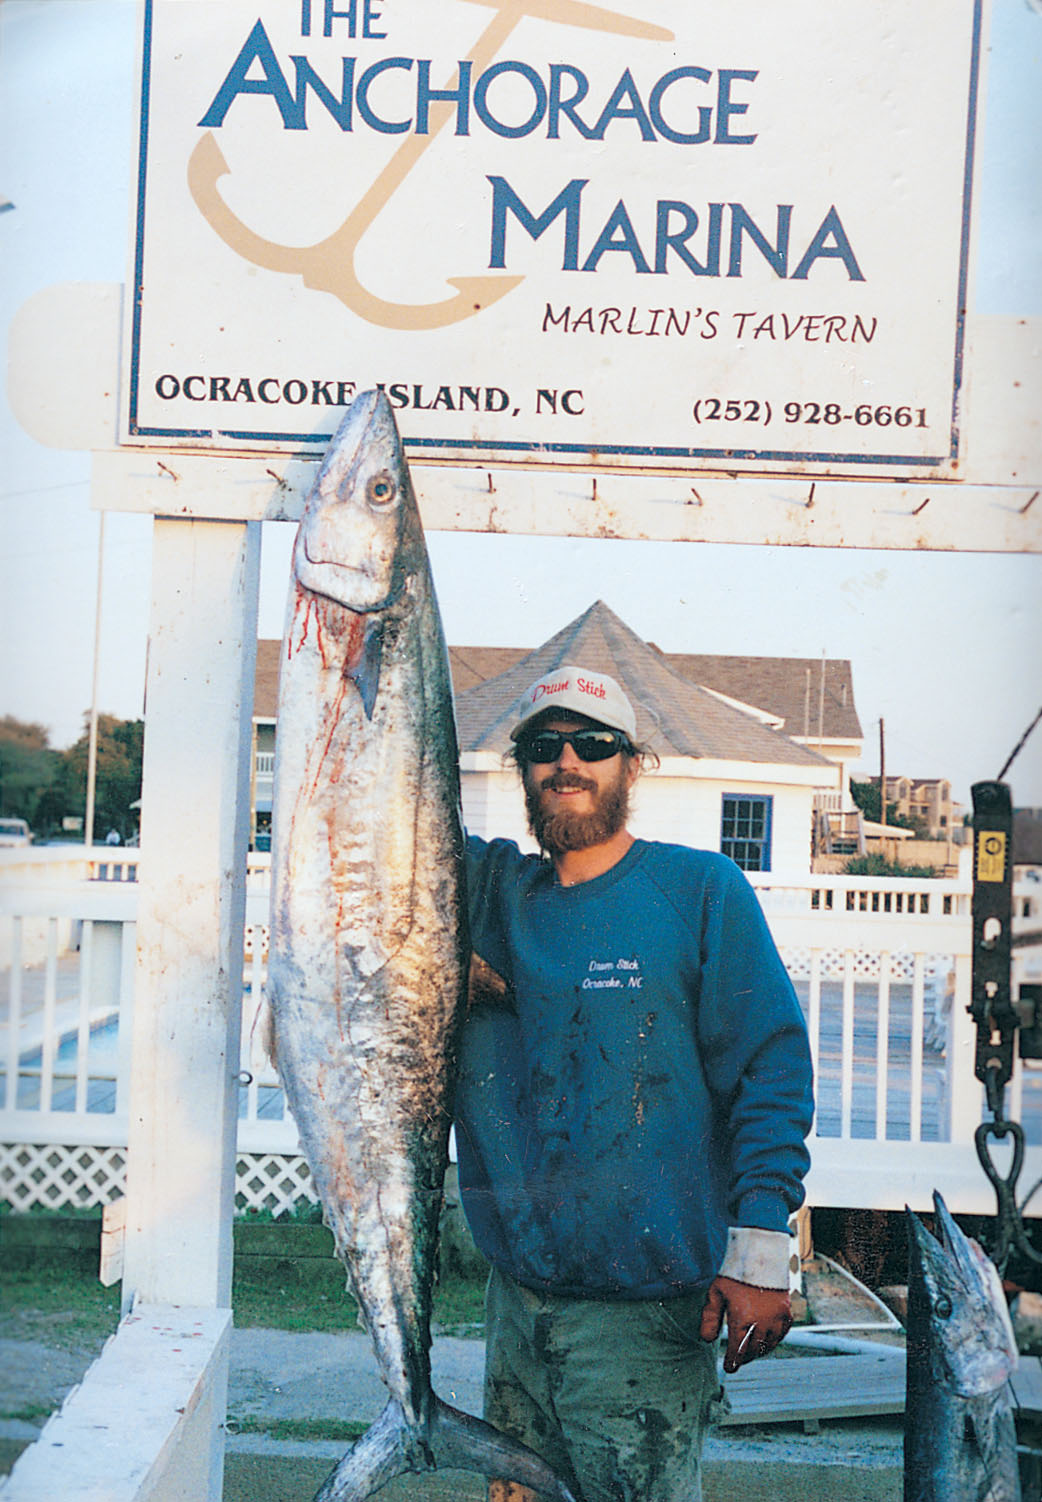 The Anchorage Inn offers fishing charters and boat rentals at their marina. Photo courtesy of The Anchorage Inn.